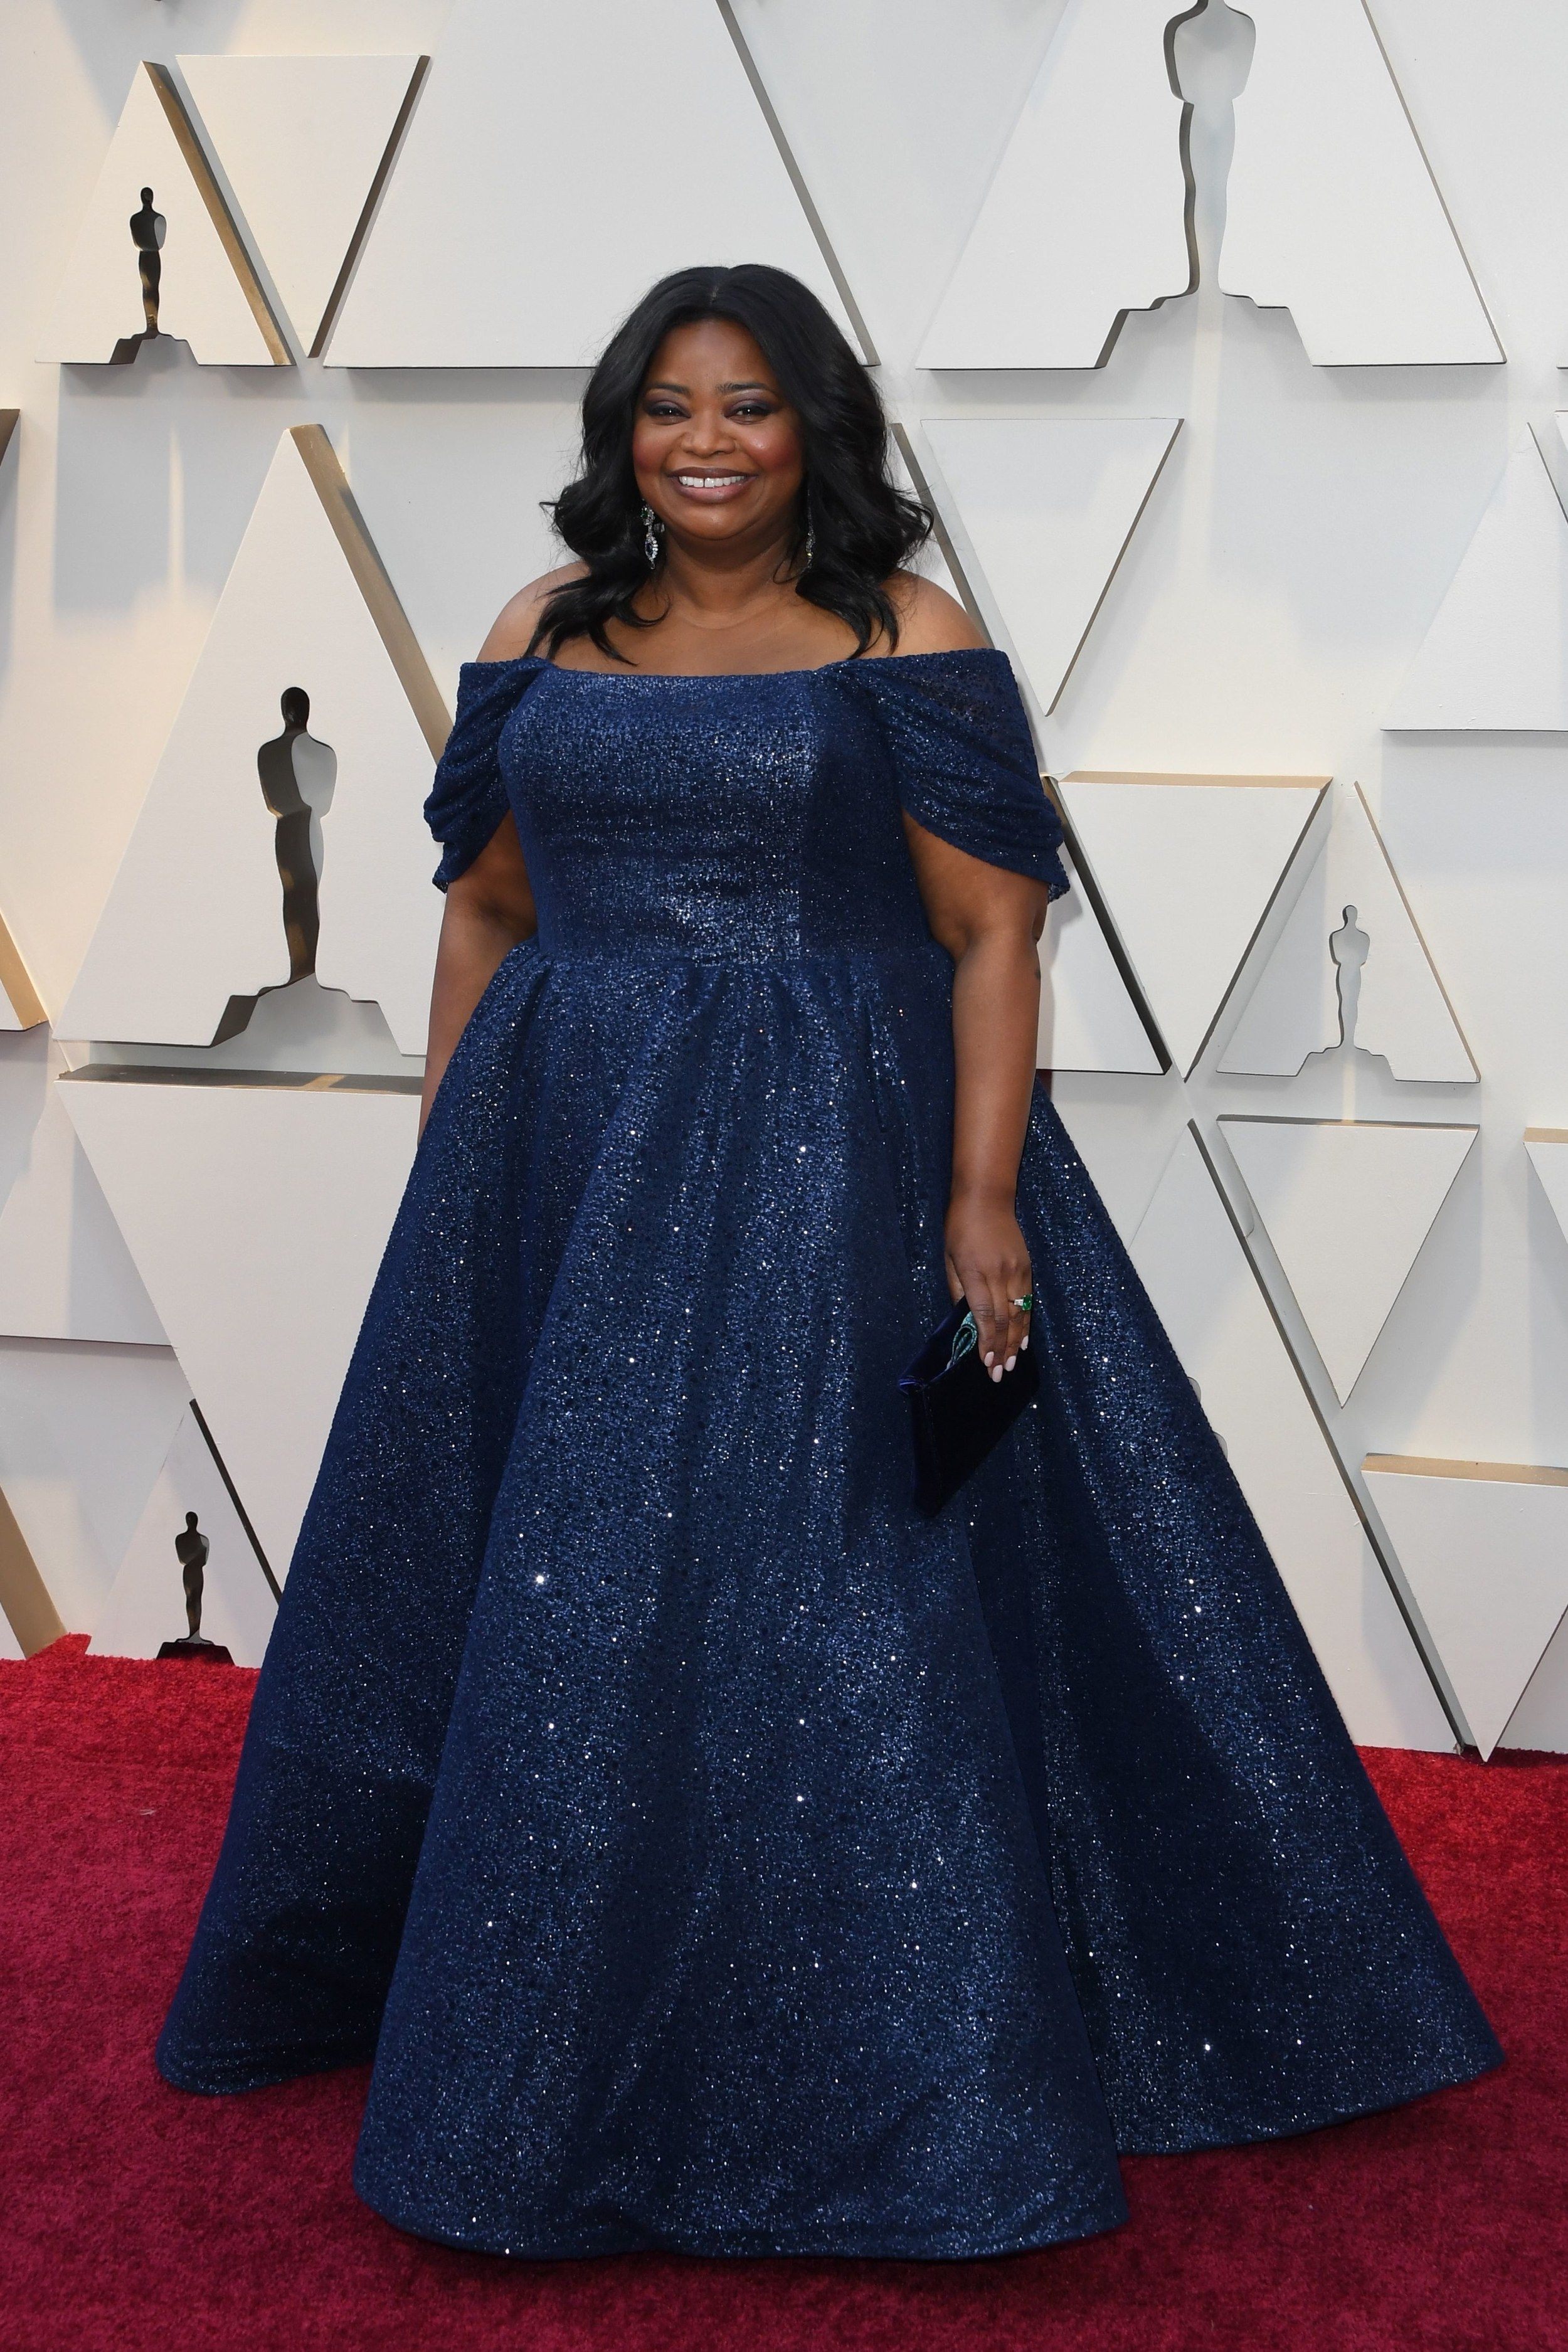 All the Dresses and Fashion on the Oscars 2019 Red Carpet in